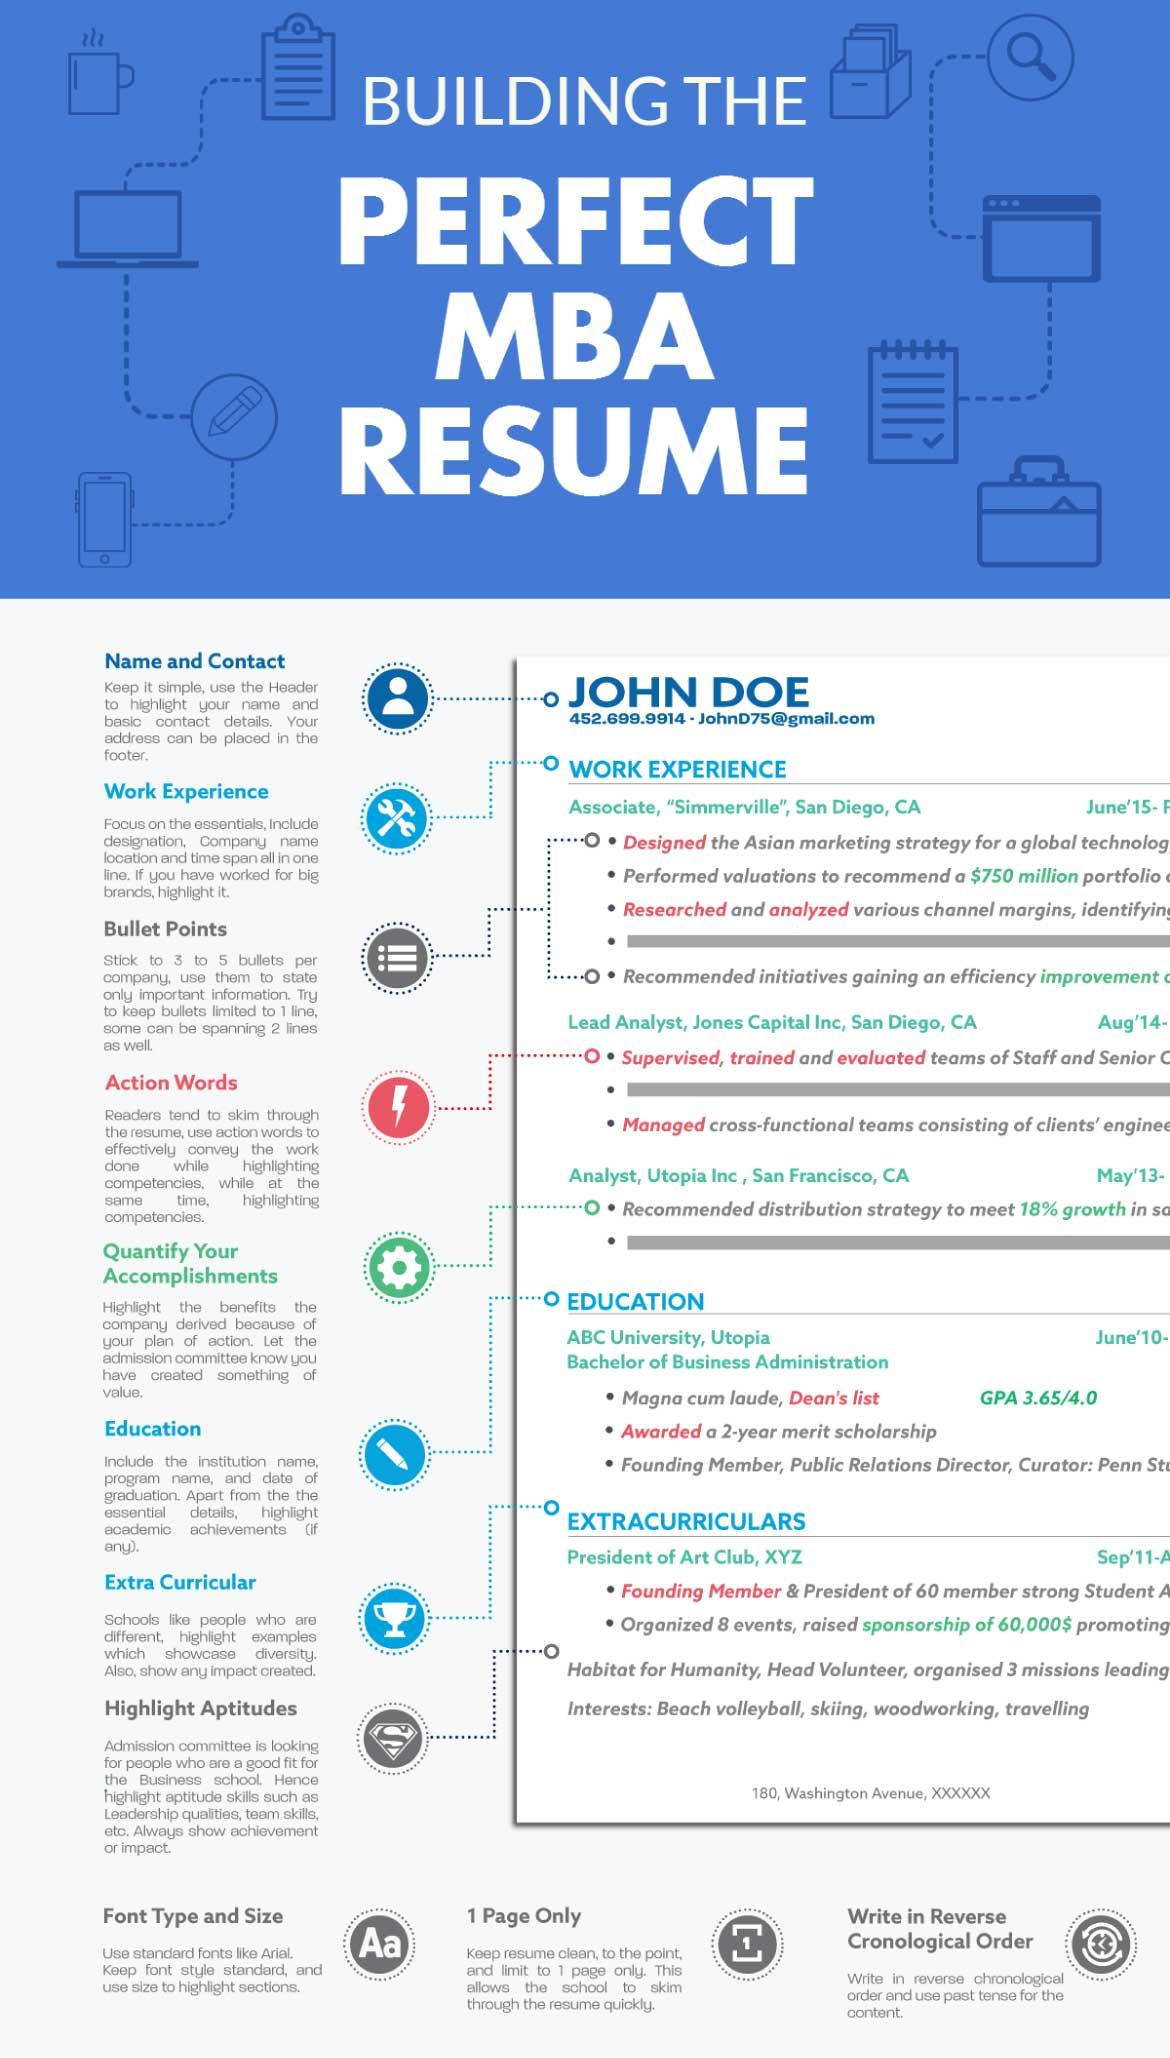 10 Steps Towards Creating The Perfect Mba Resume Infographic